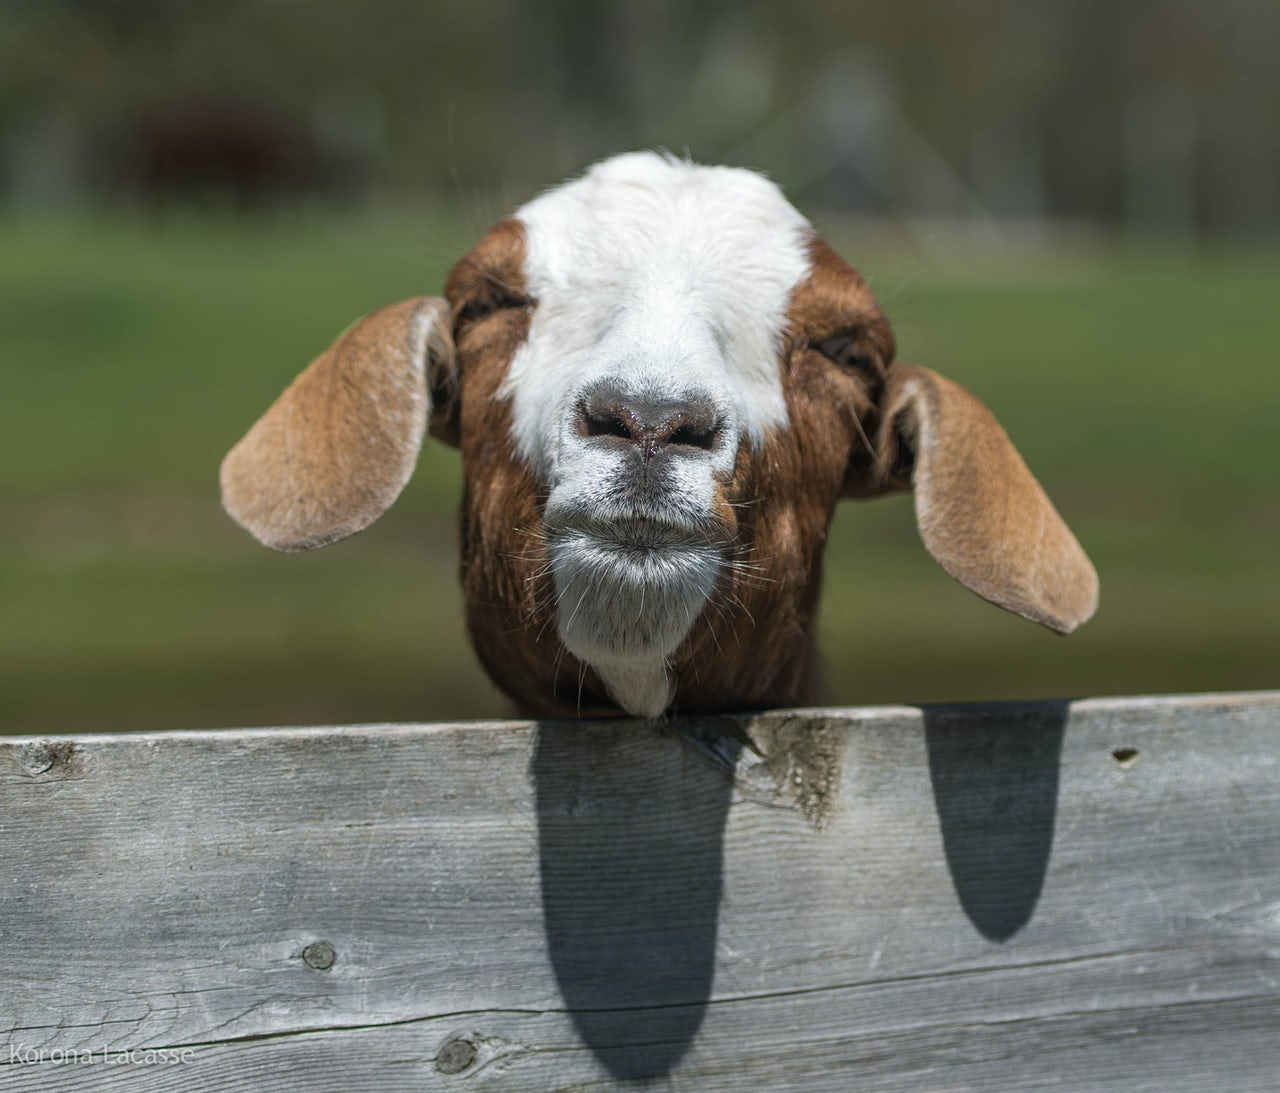 Take a look at this goat.